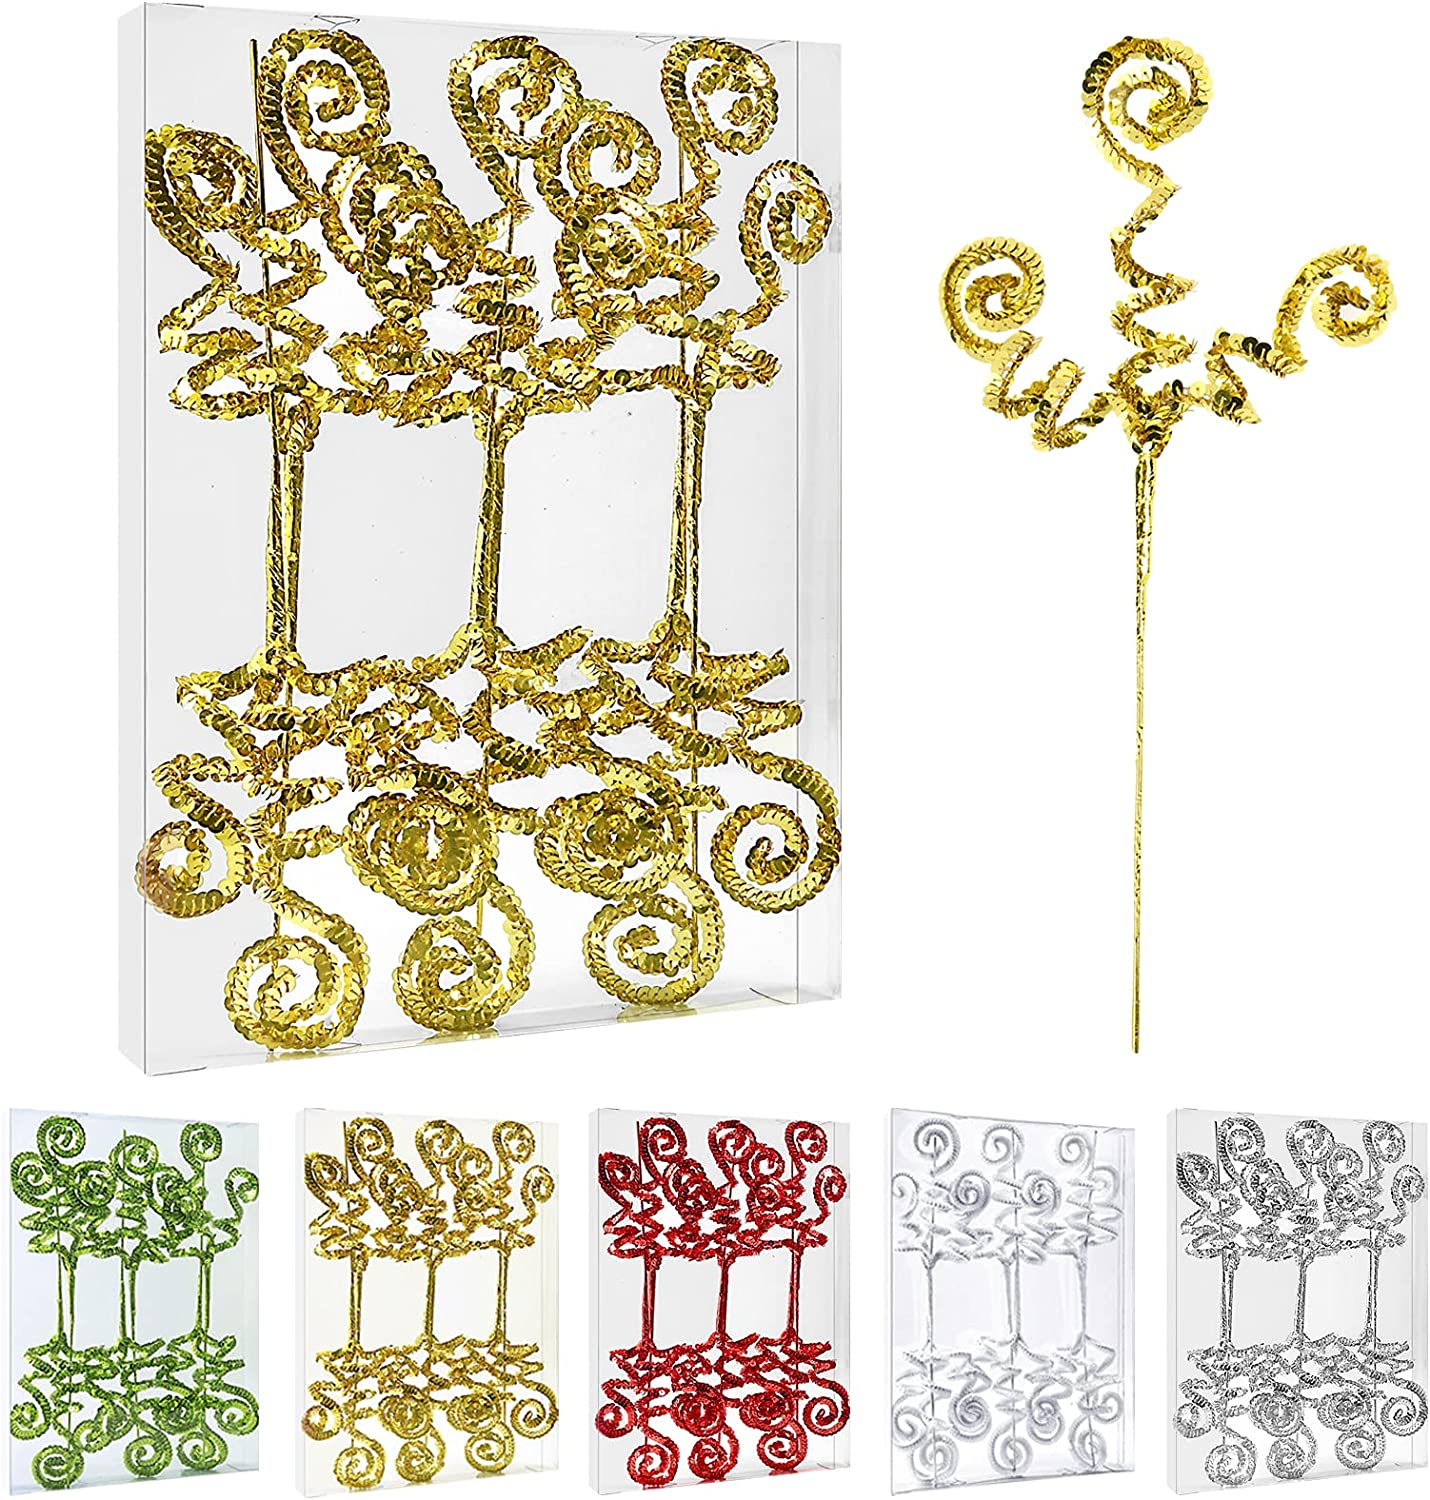 ZHANYIGY 6PC Set Department store 70% OFF Outlet Gold Christmas DecorationSequins Candy Sh Tree